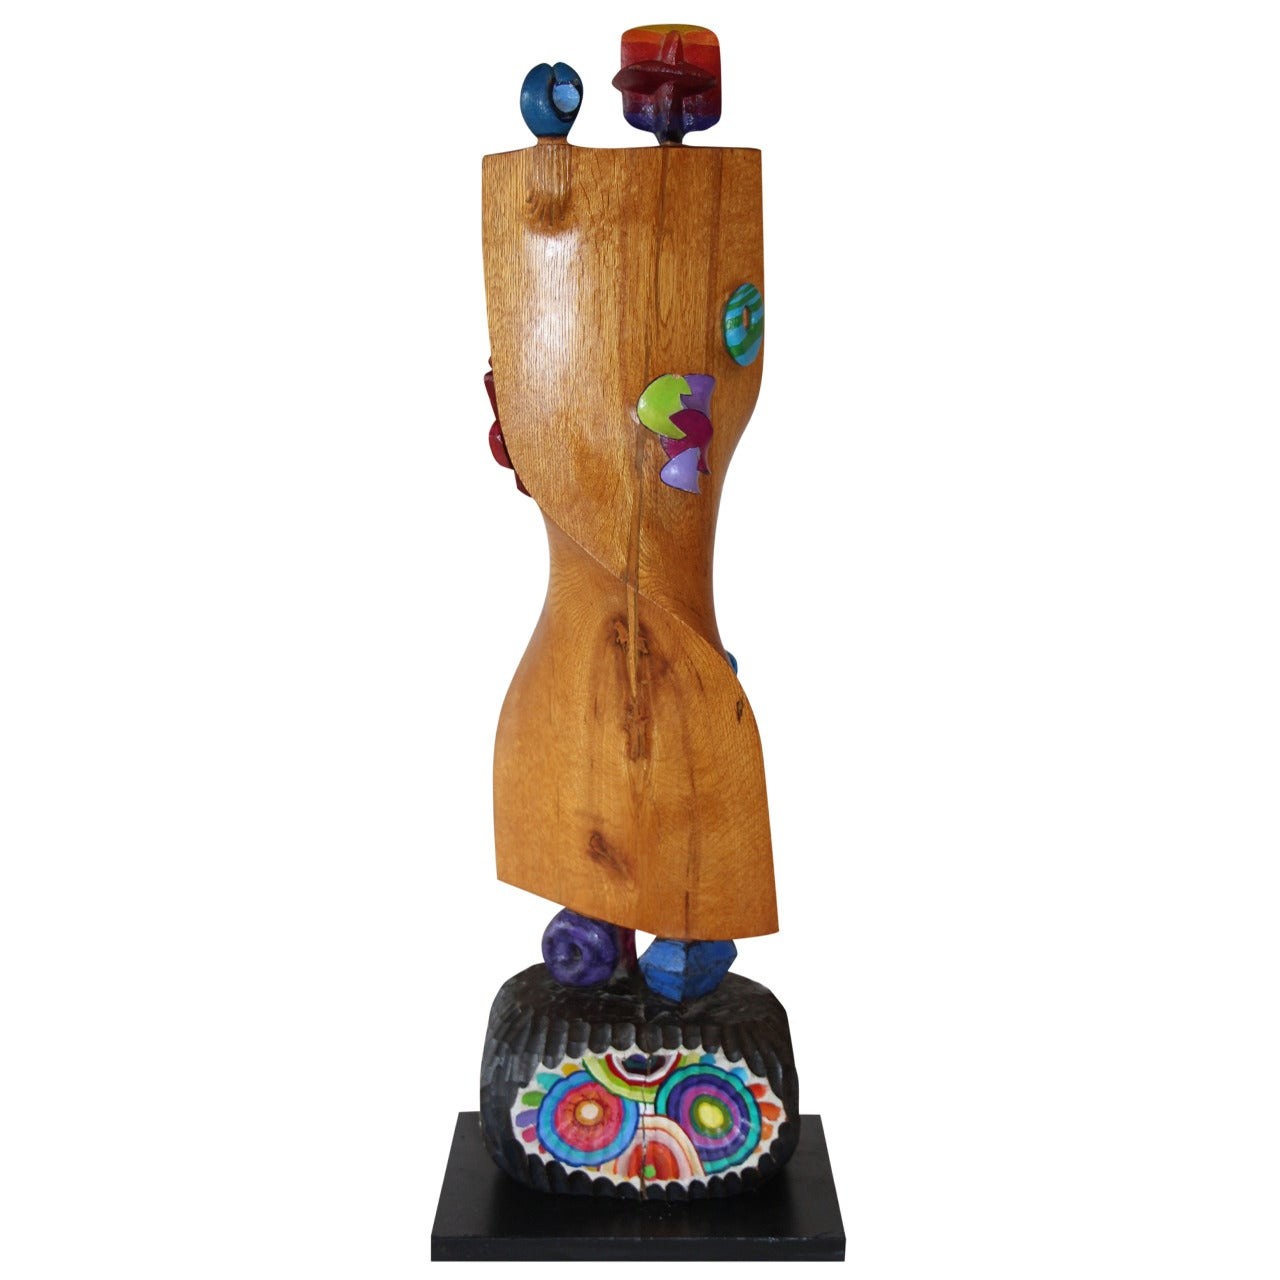 Whimsical Wood Sculpture by Noted NJ Artist Fred Schumm